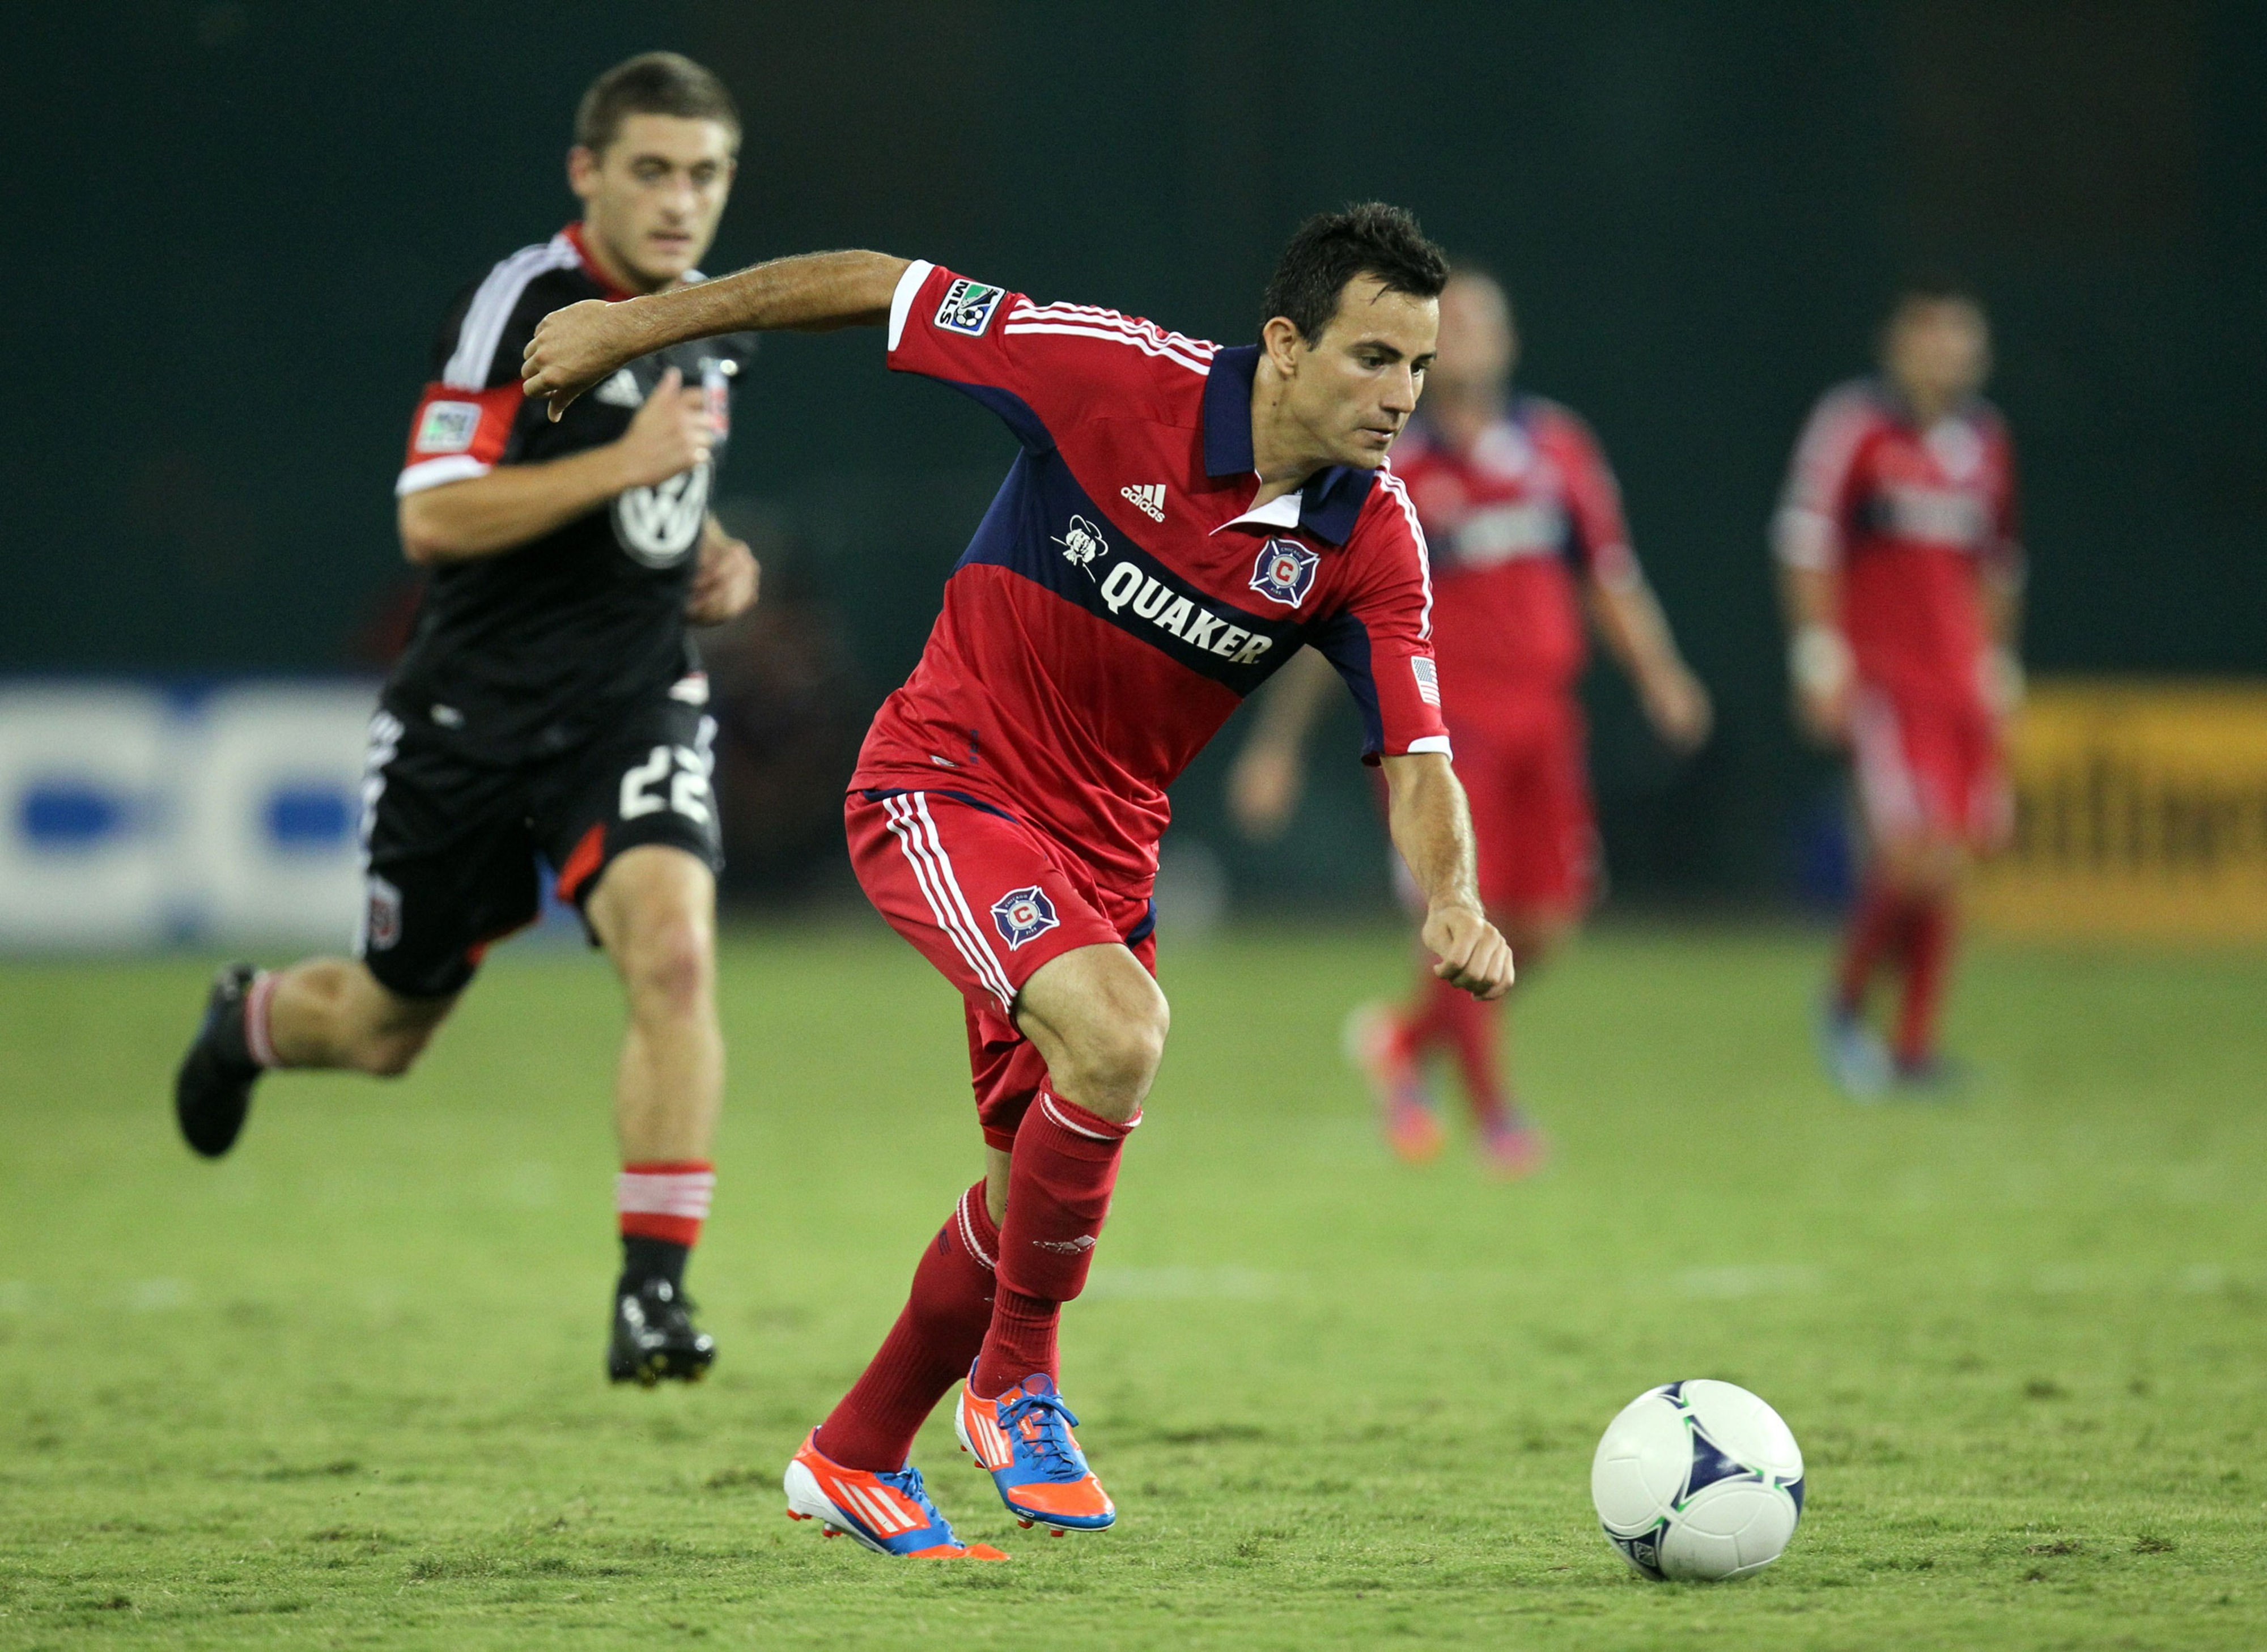 WASHINGTON, DC - AUGUST 22:  Marco Pappa #16 of the Chicago Fire competes for the ball with Chris Korb #22 of D.C. United at RFK Stadium on August 22, 2012 in Washington, DC.(Photo by Ned Dishman/Getty Images)